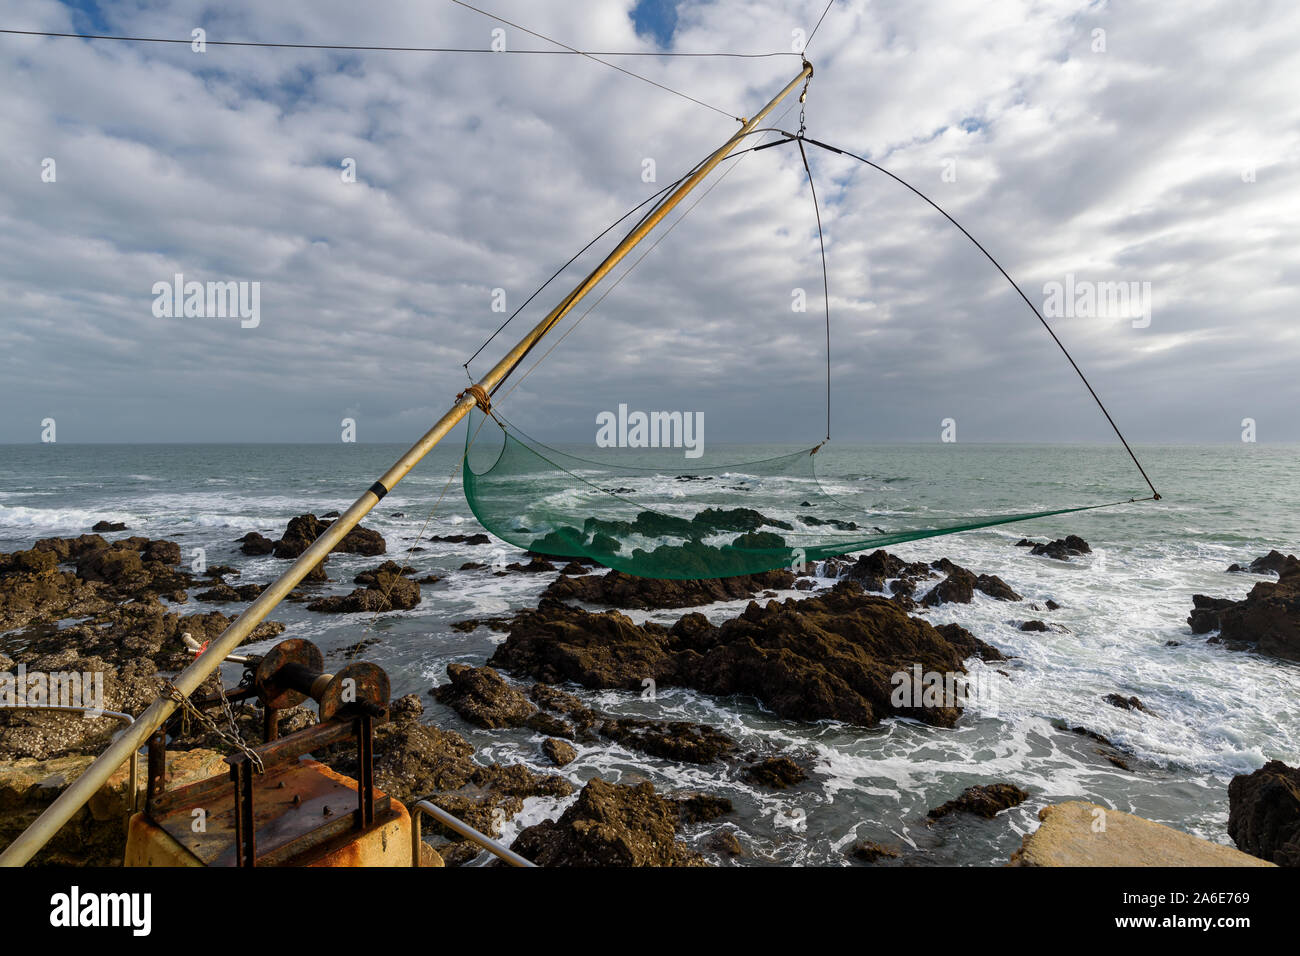 Net fishing gear along the atlantic coast in Le Pouliguen, Loire-Atlantique department, western France. Stock Photo